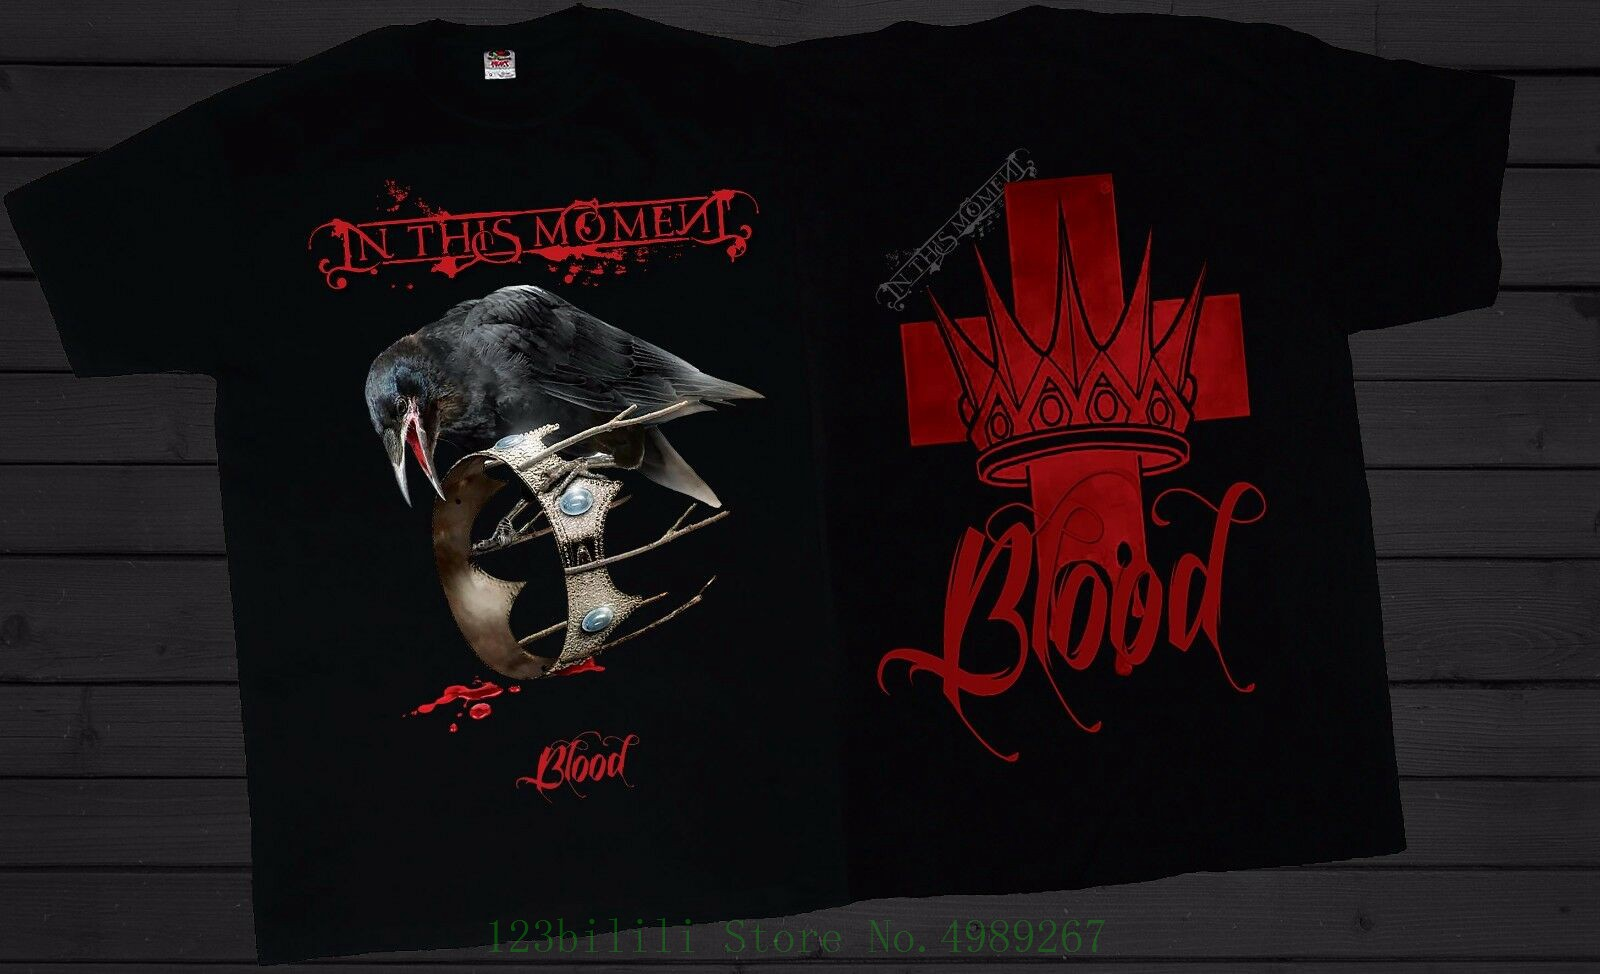 T/_shirt-SIZES:S to 6XL Rise of the Blood Legion In This Moment